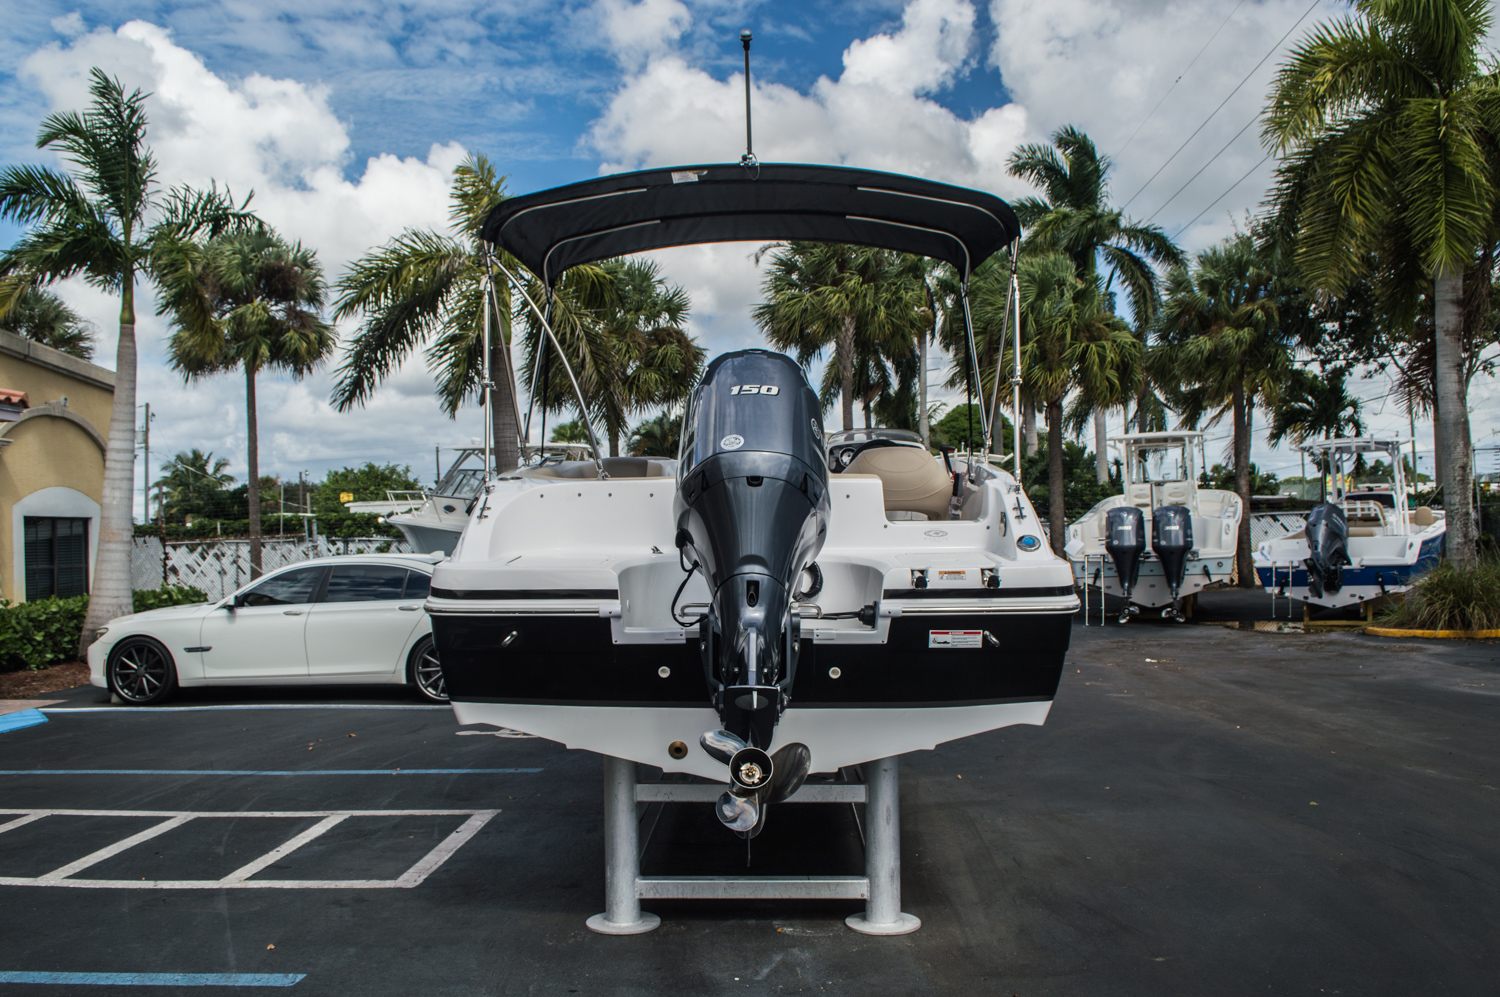 Thumbnail 11 for New 2016 Hurricane SunDeck Sport SS 188 OB boat for sale in West Palm Beach, FL